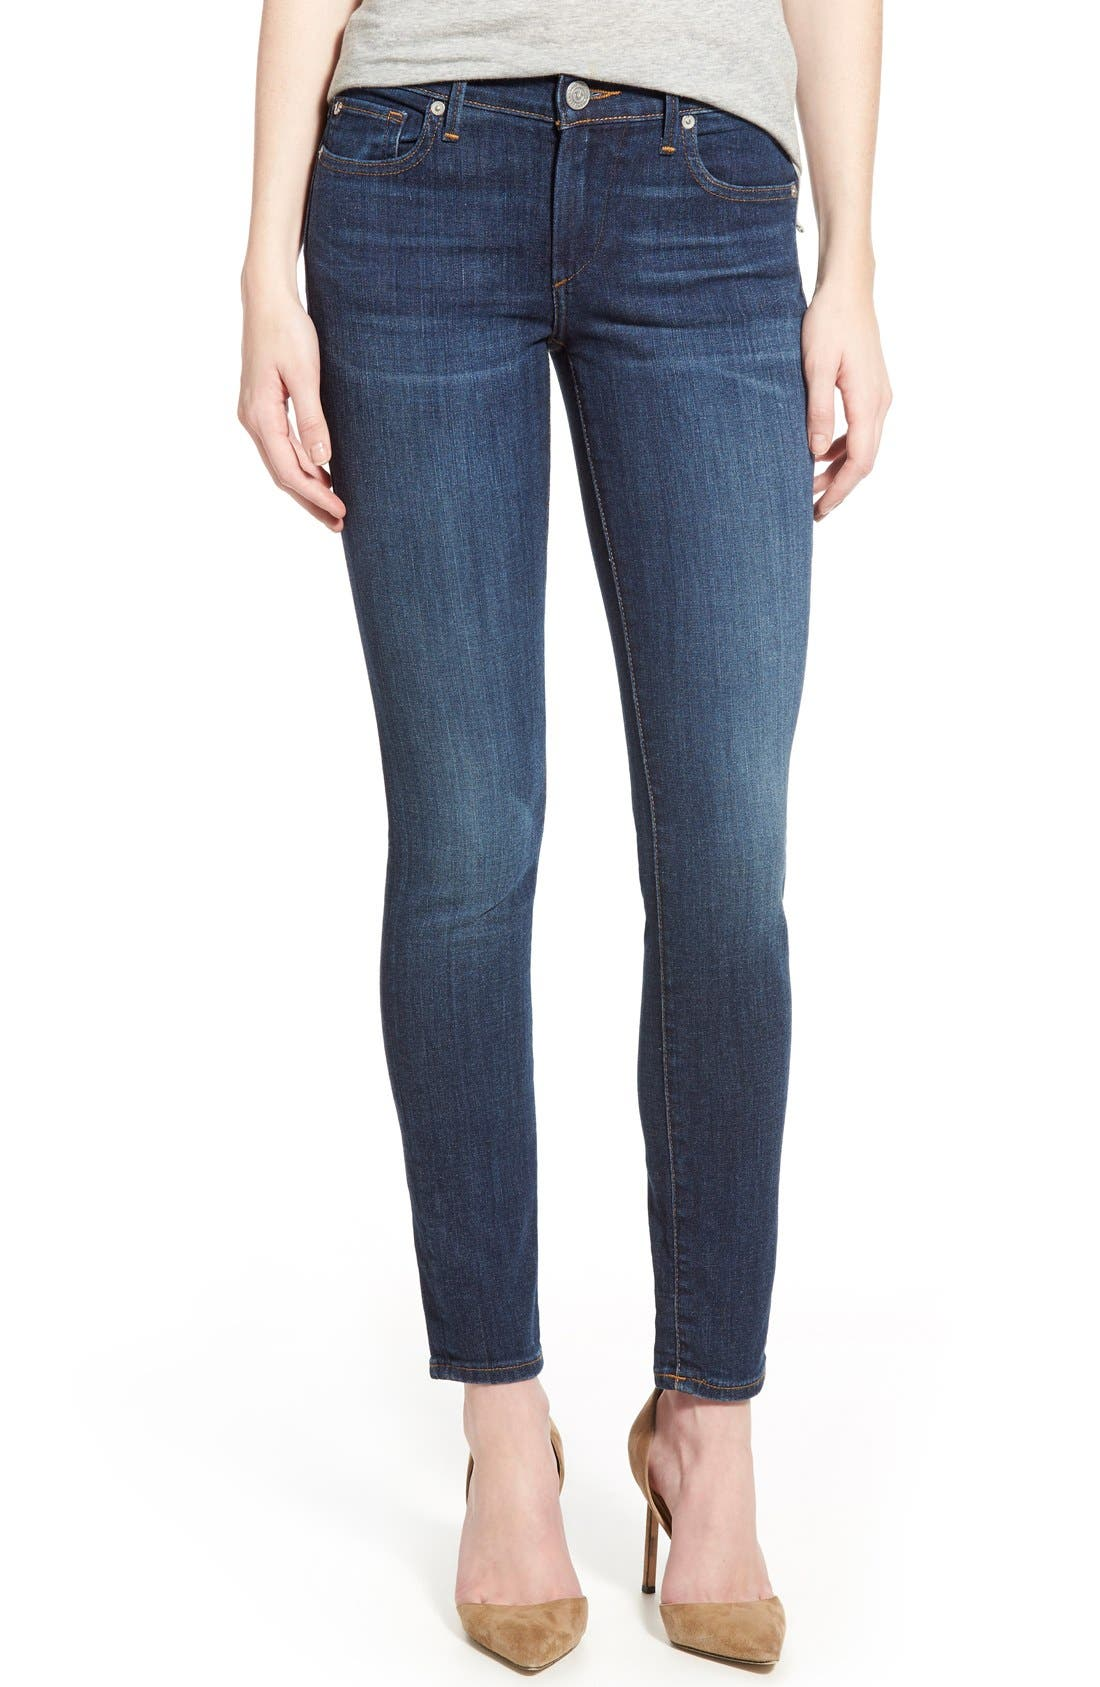 Main Image - True Religion Brand Jeans 'Halle' Skinny Jeans (Worn Vintage)